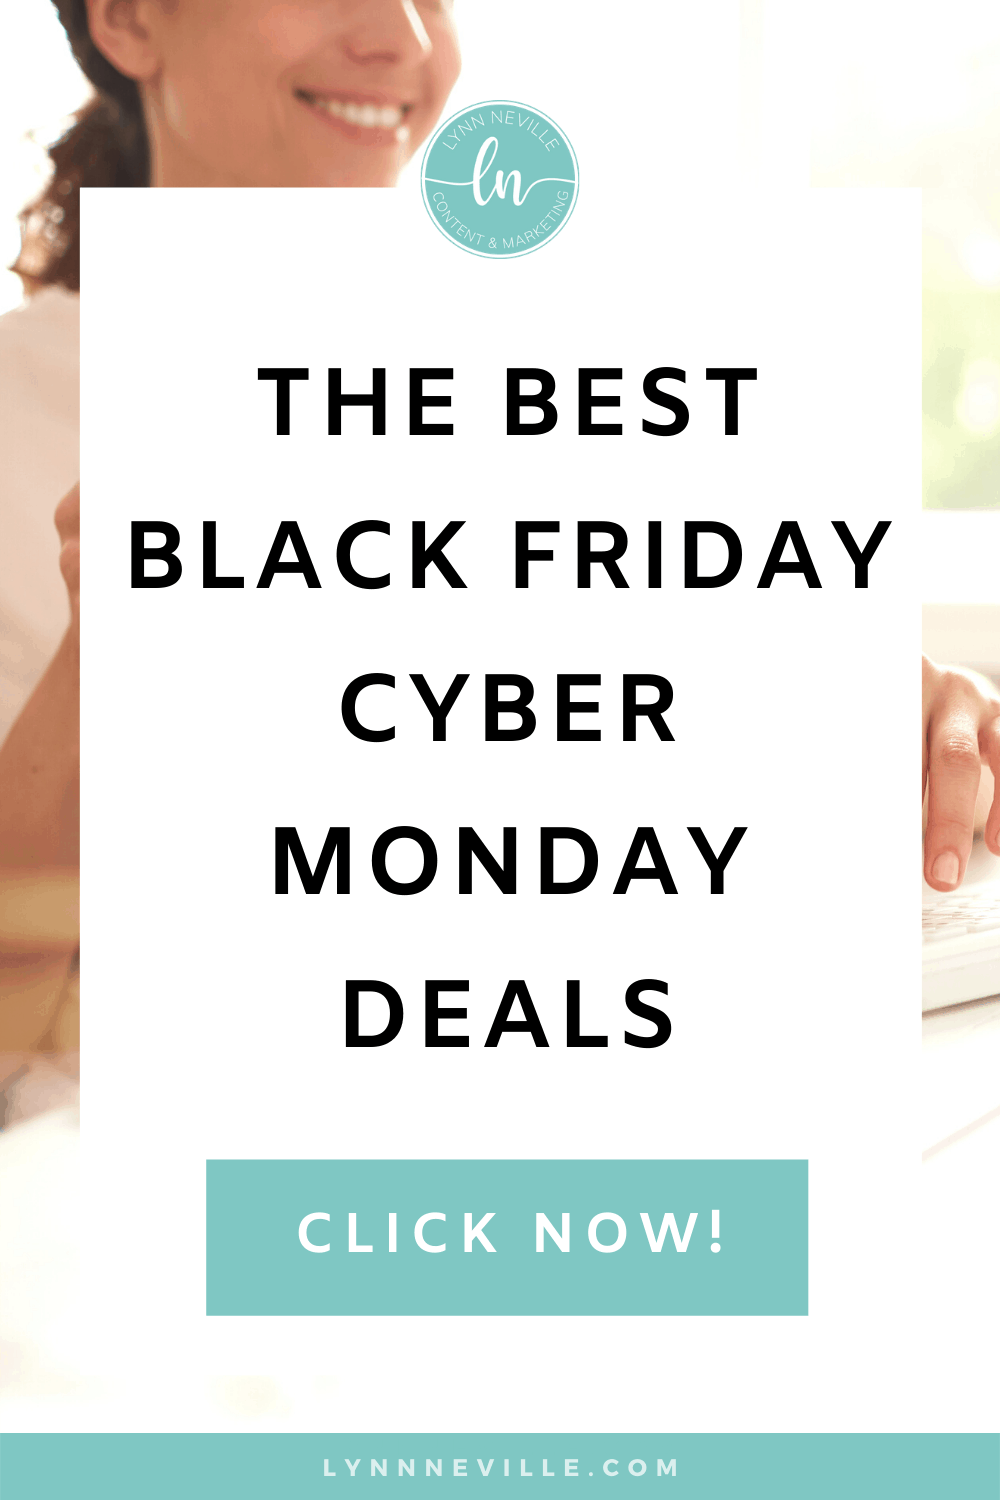 The Best Black Friday Cyber Monday Deals